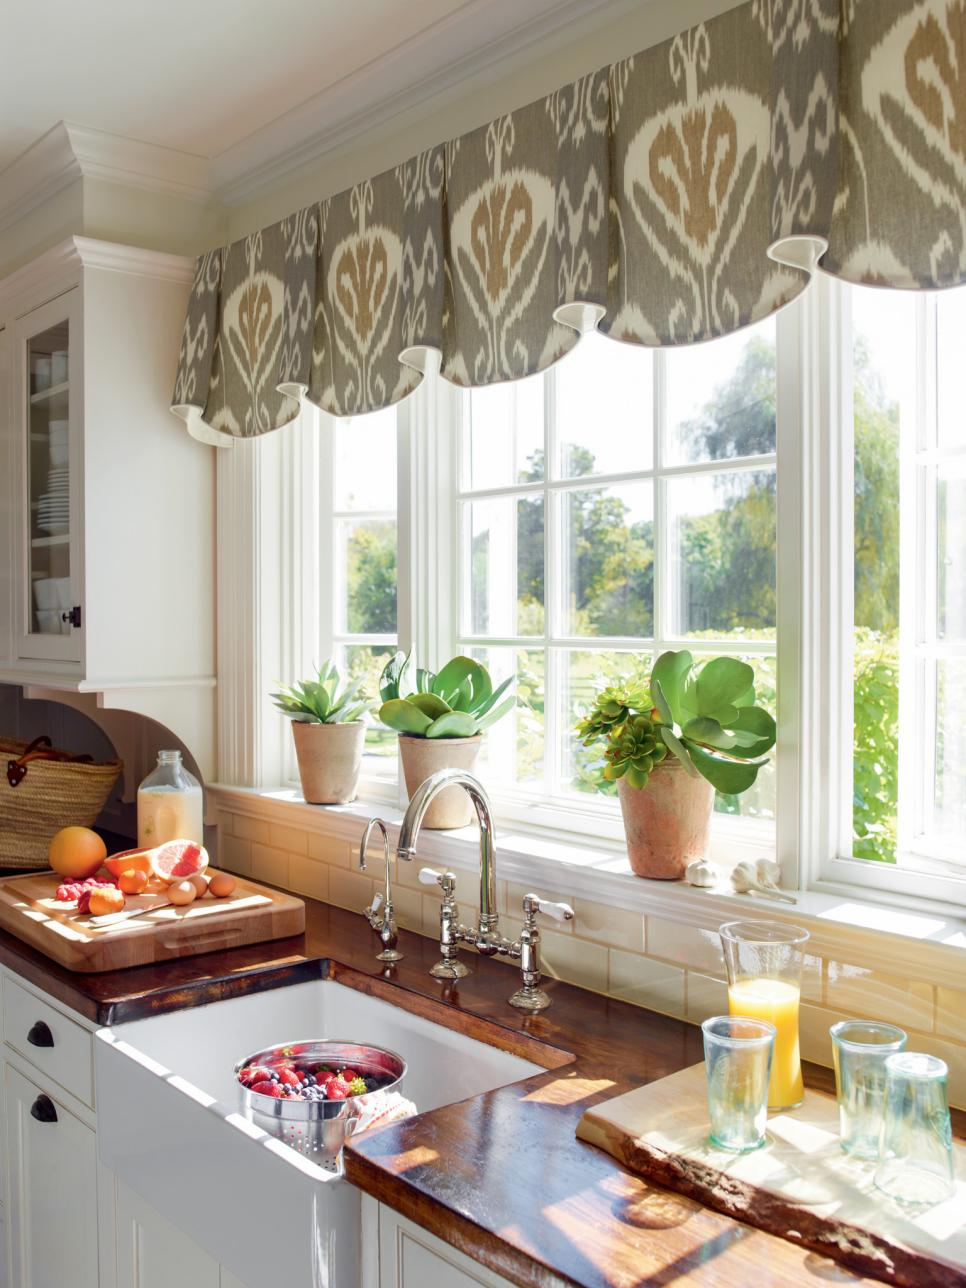 Nice kitchen window treatments coordinated charm. fabric-based window treatments ... fbiwpdl